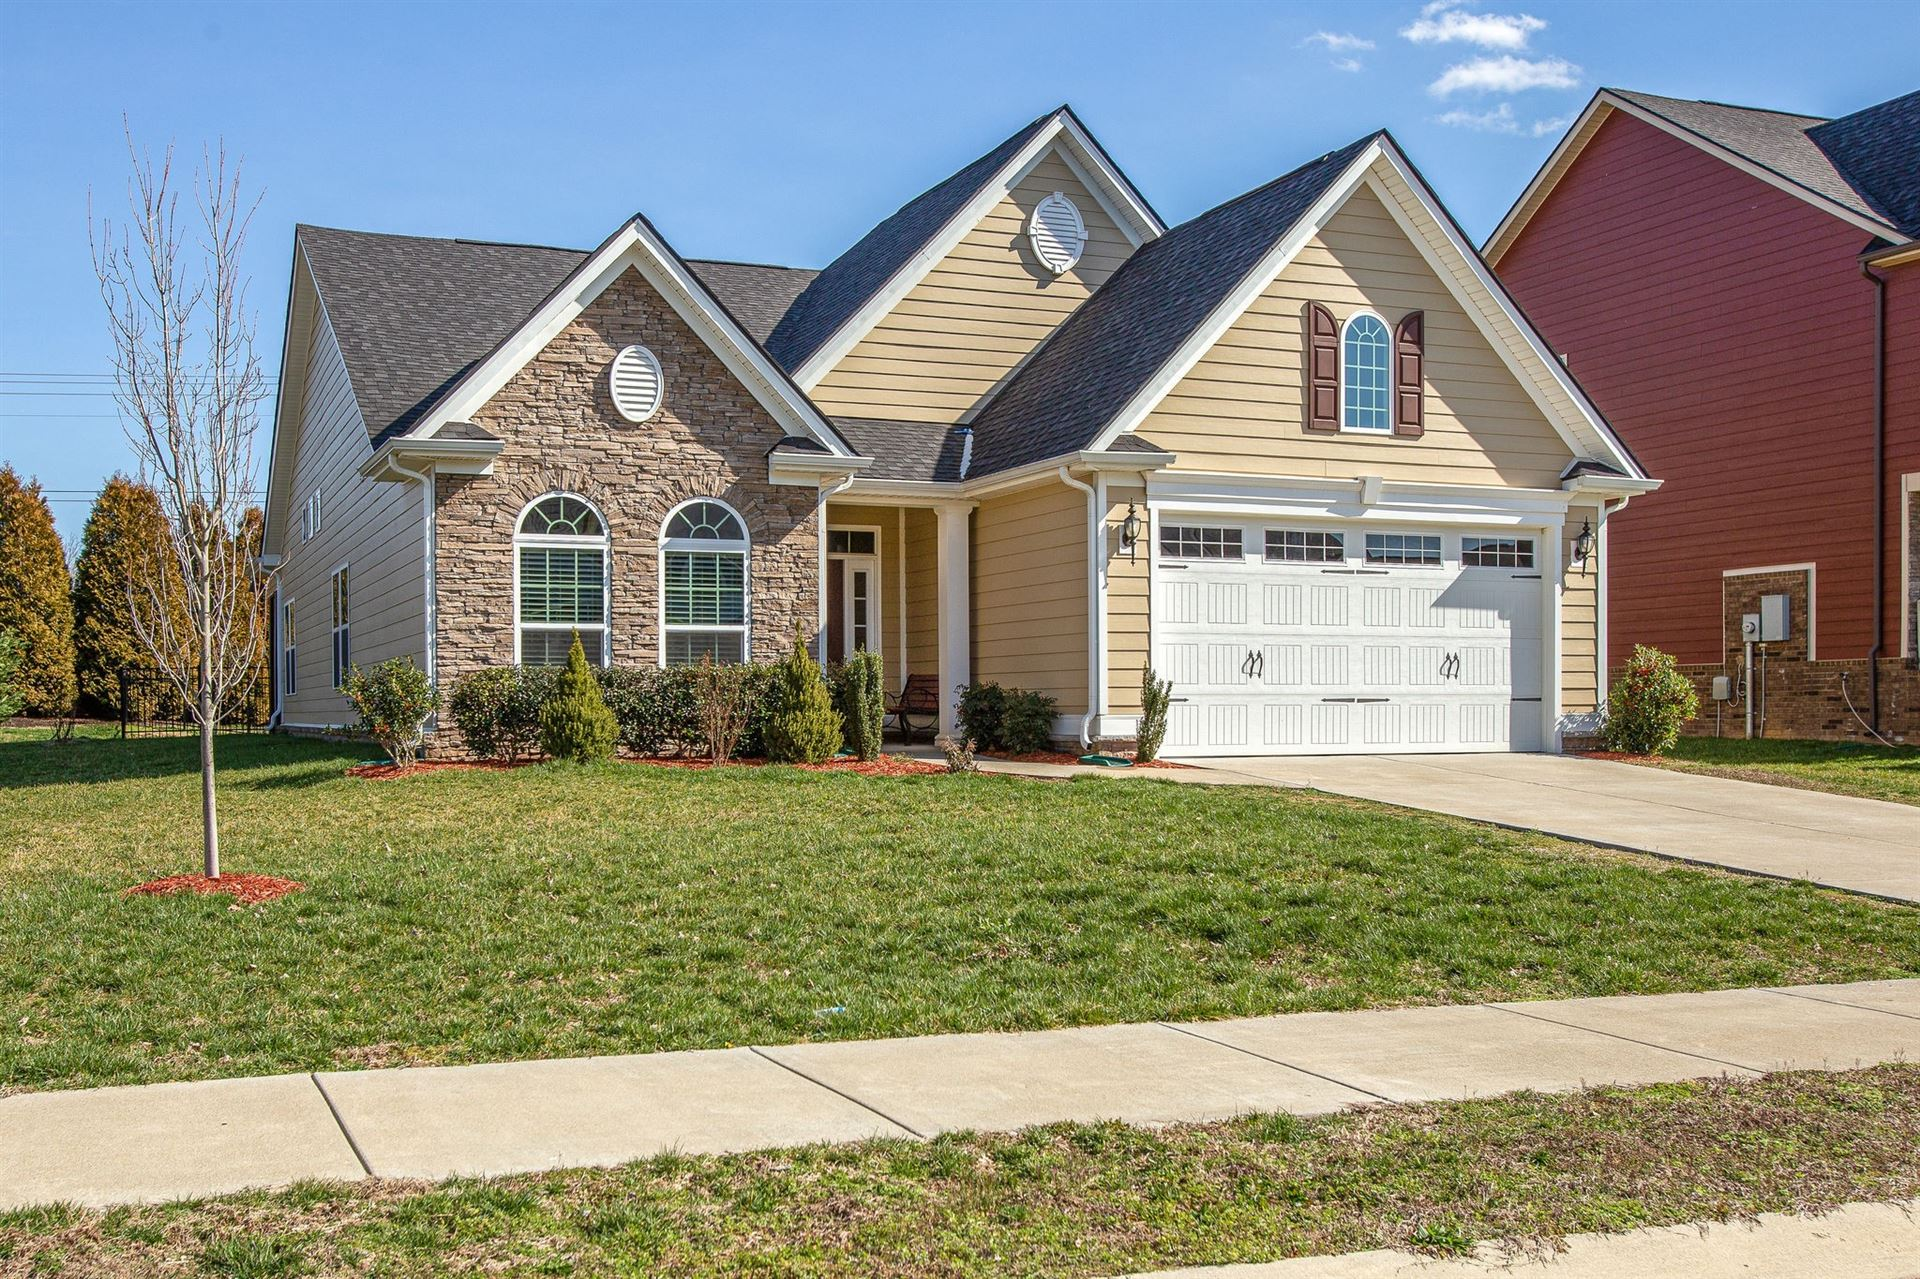 Photo of 1998 Allerton Way, Spring Hill, TN 37174 (MLS # 2155279)